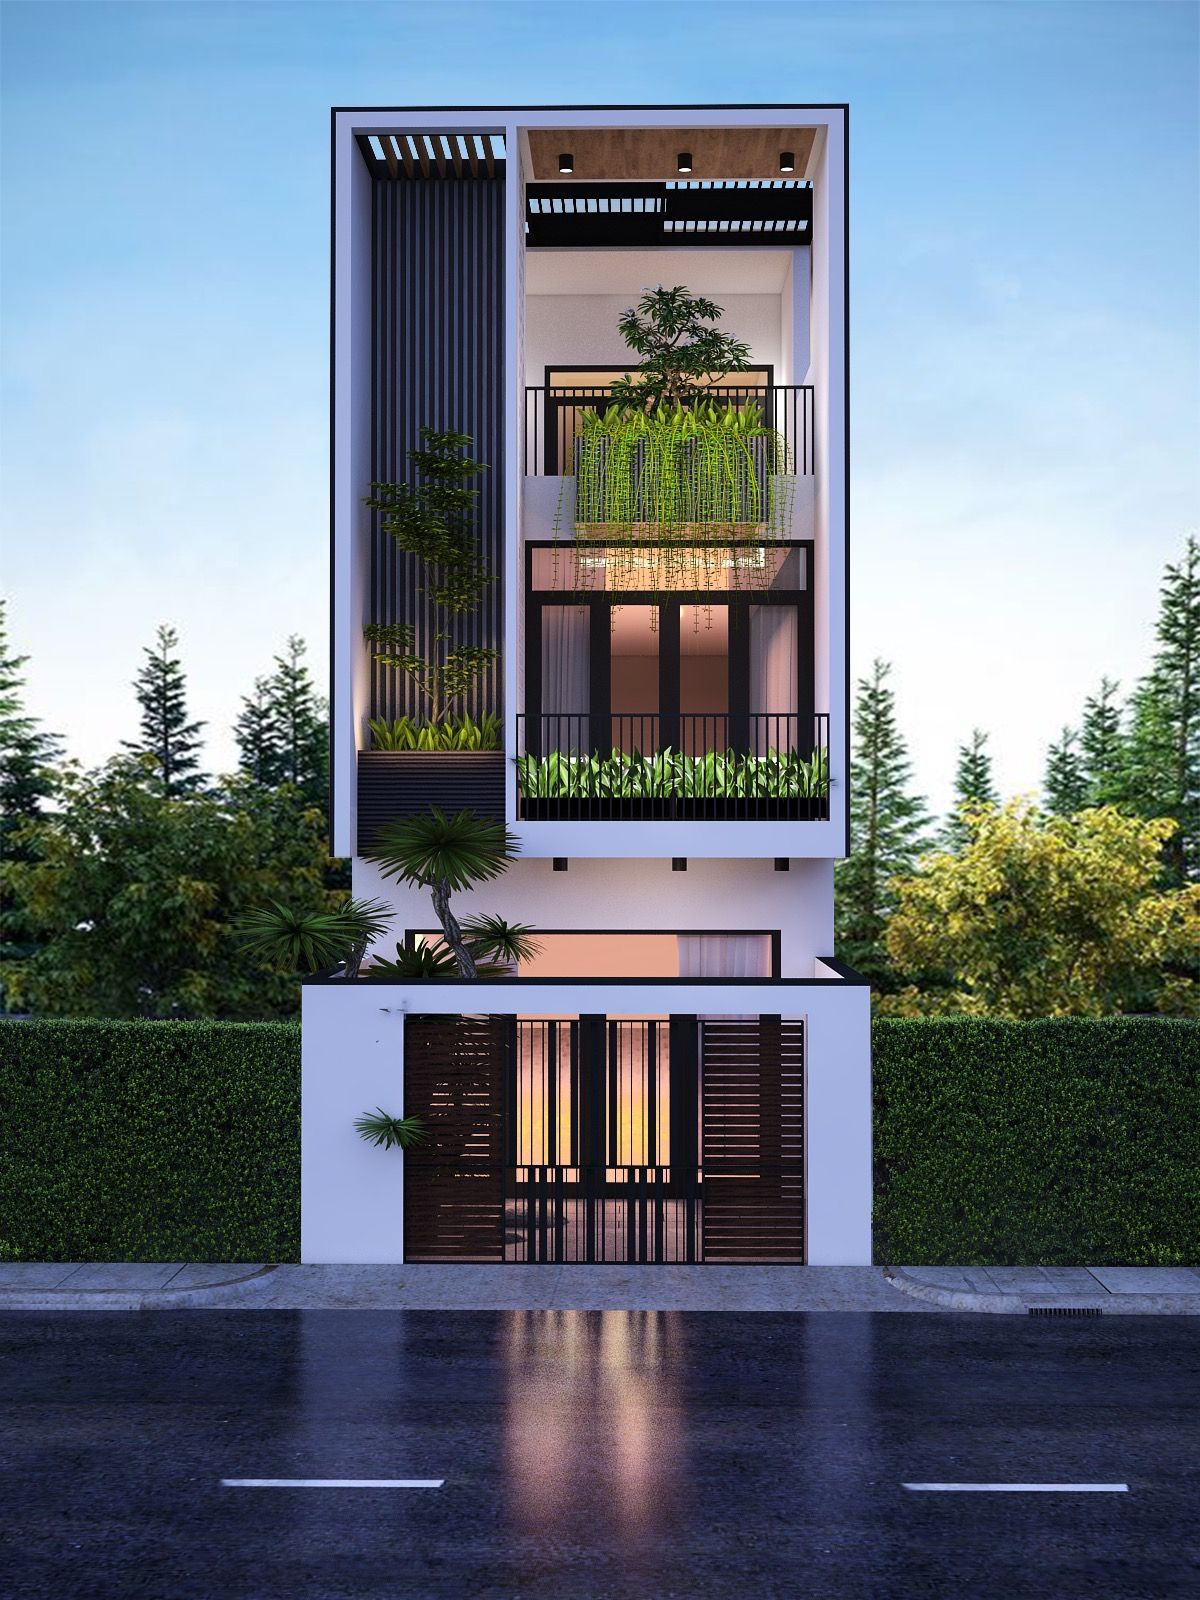 Facade House Small Modern Home Cool House Designs: 50 Narrow Lot Houses That Transform A Skinny Exterior Into Something Special